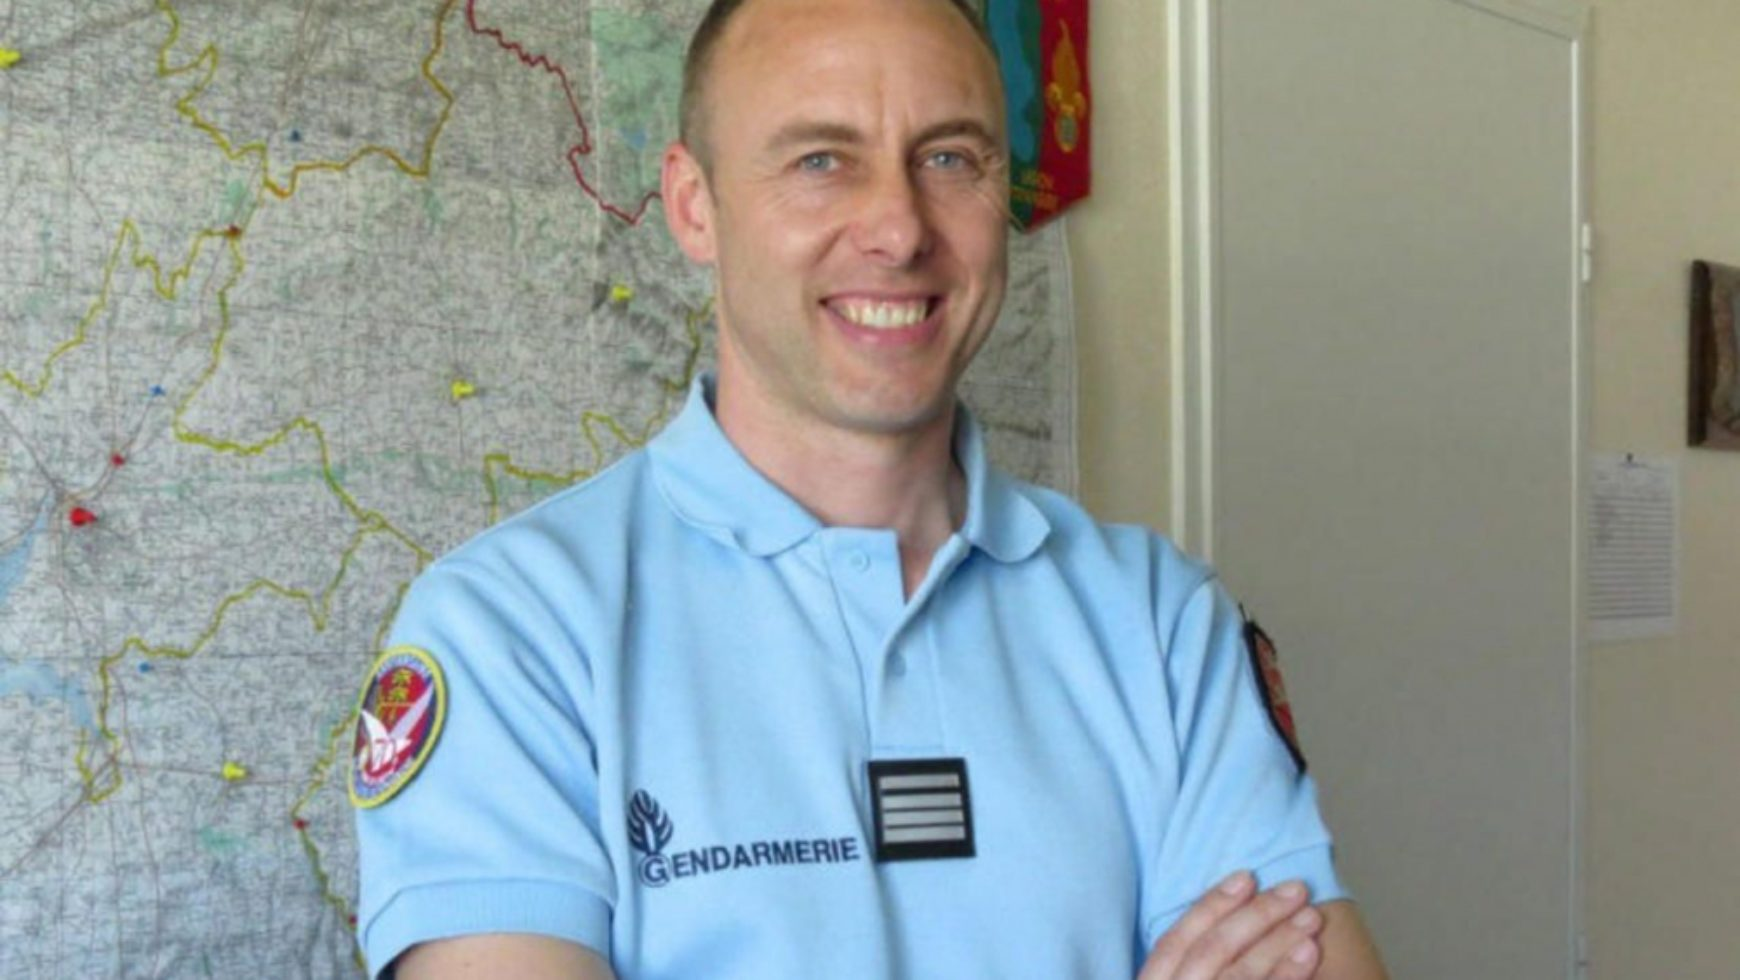 Hommage national au colonel Arnaud Beltrame